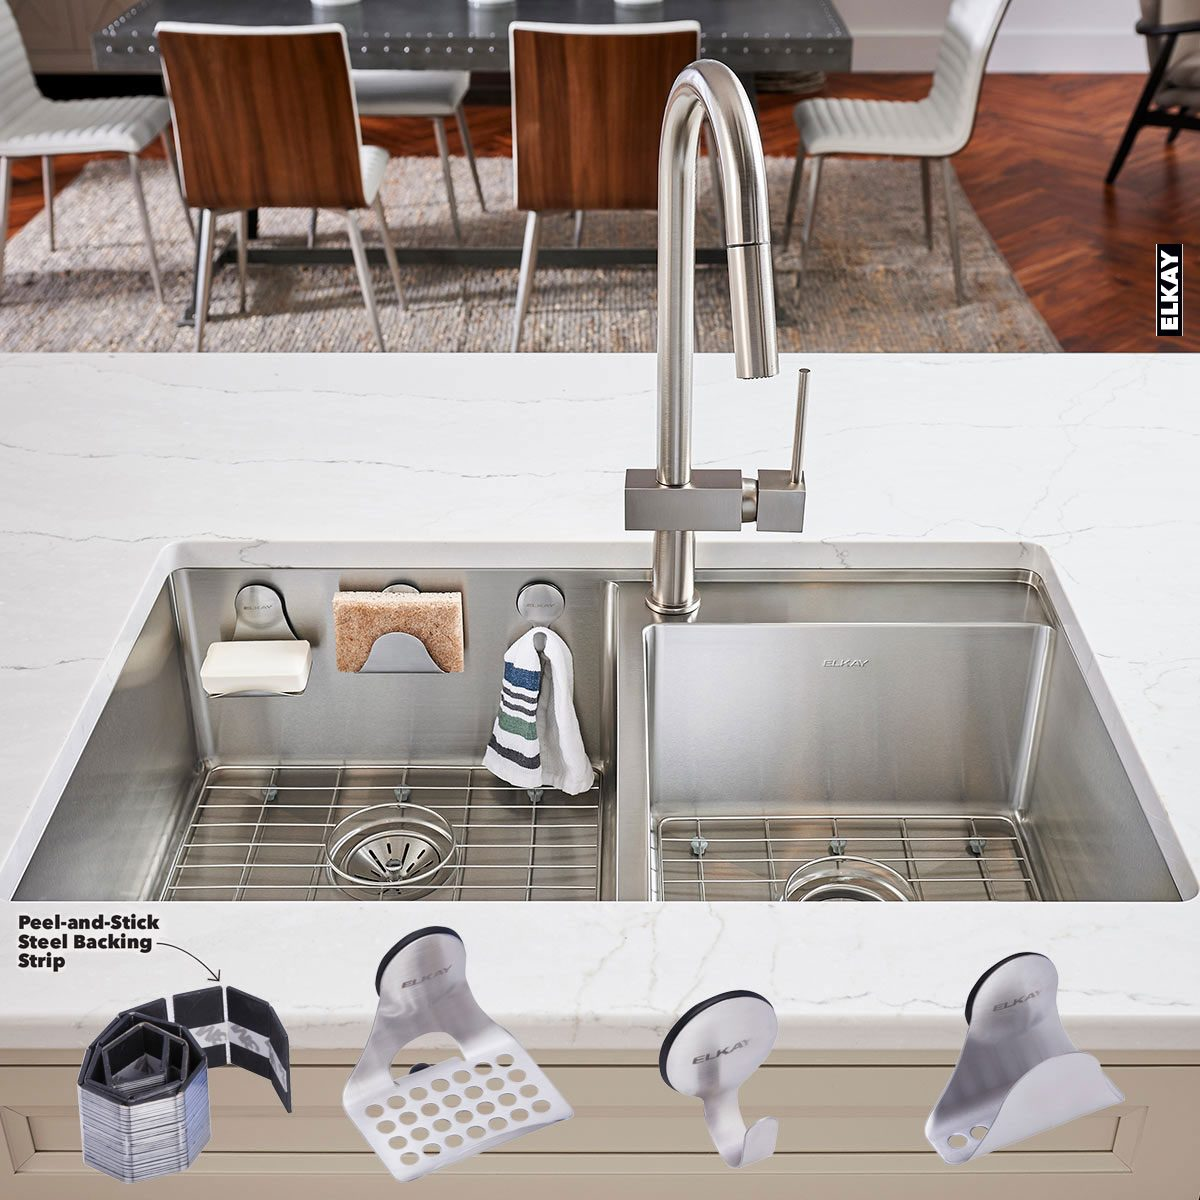 The Top 100 Diy Products Of 2017 That Are Still Amazing A Year Later Garbage Disposal Plumbing Also Lg Slide In Range On Wiring Clever Stylish Sink Accessories